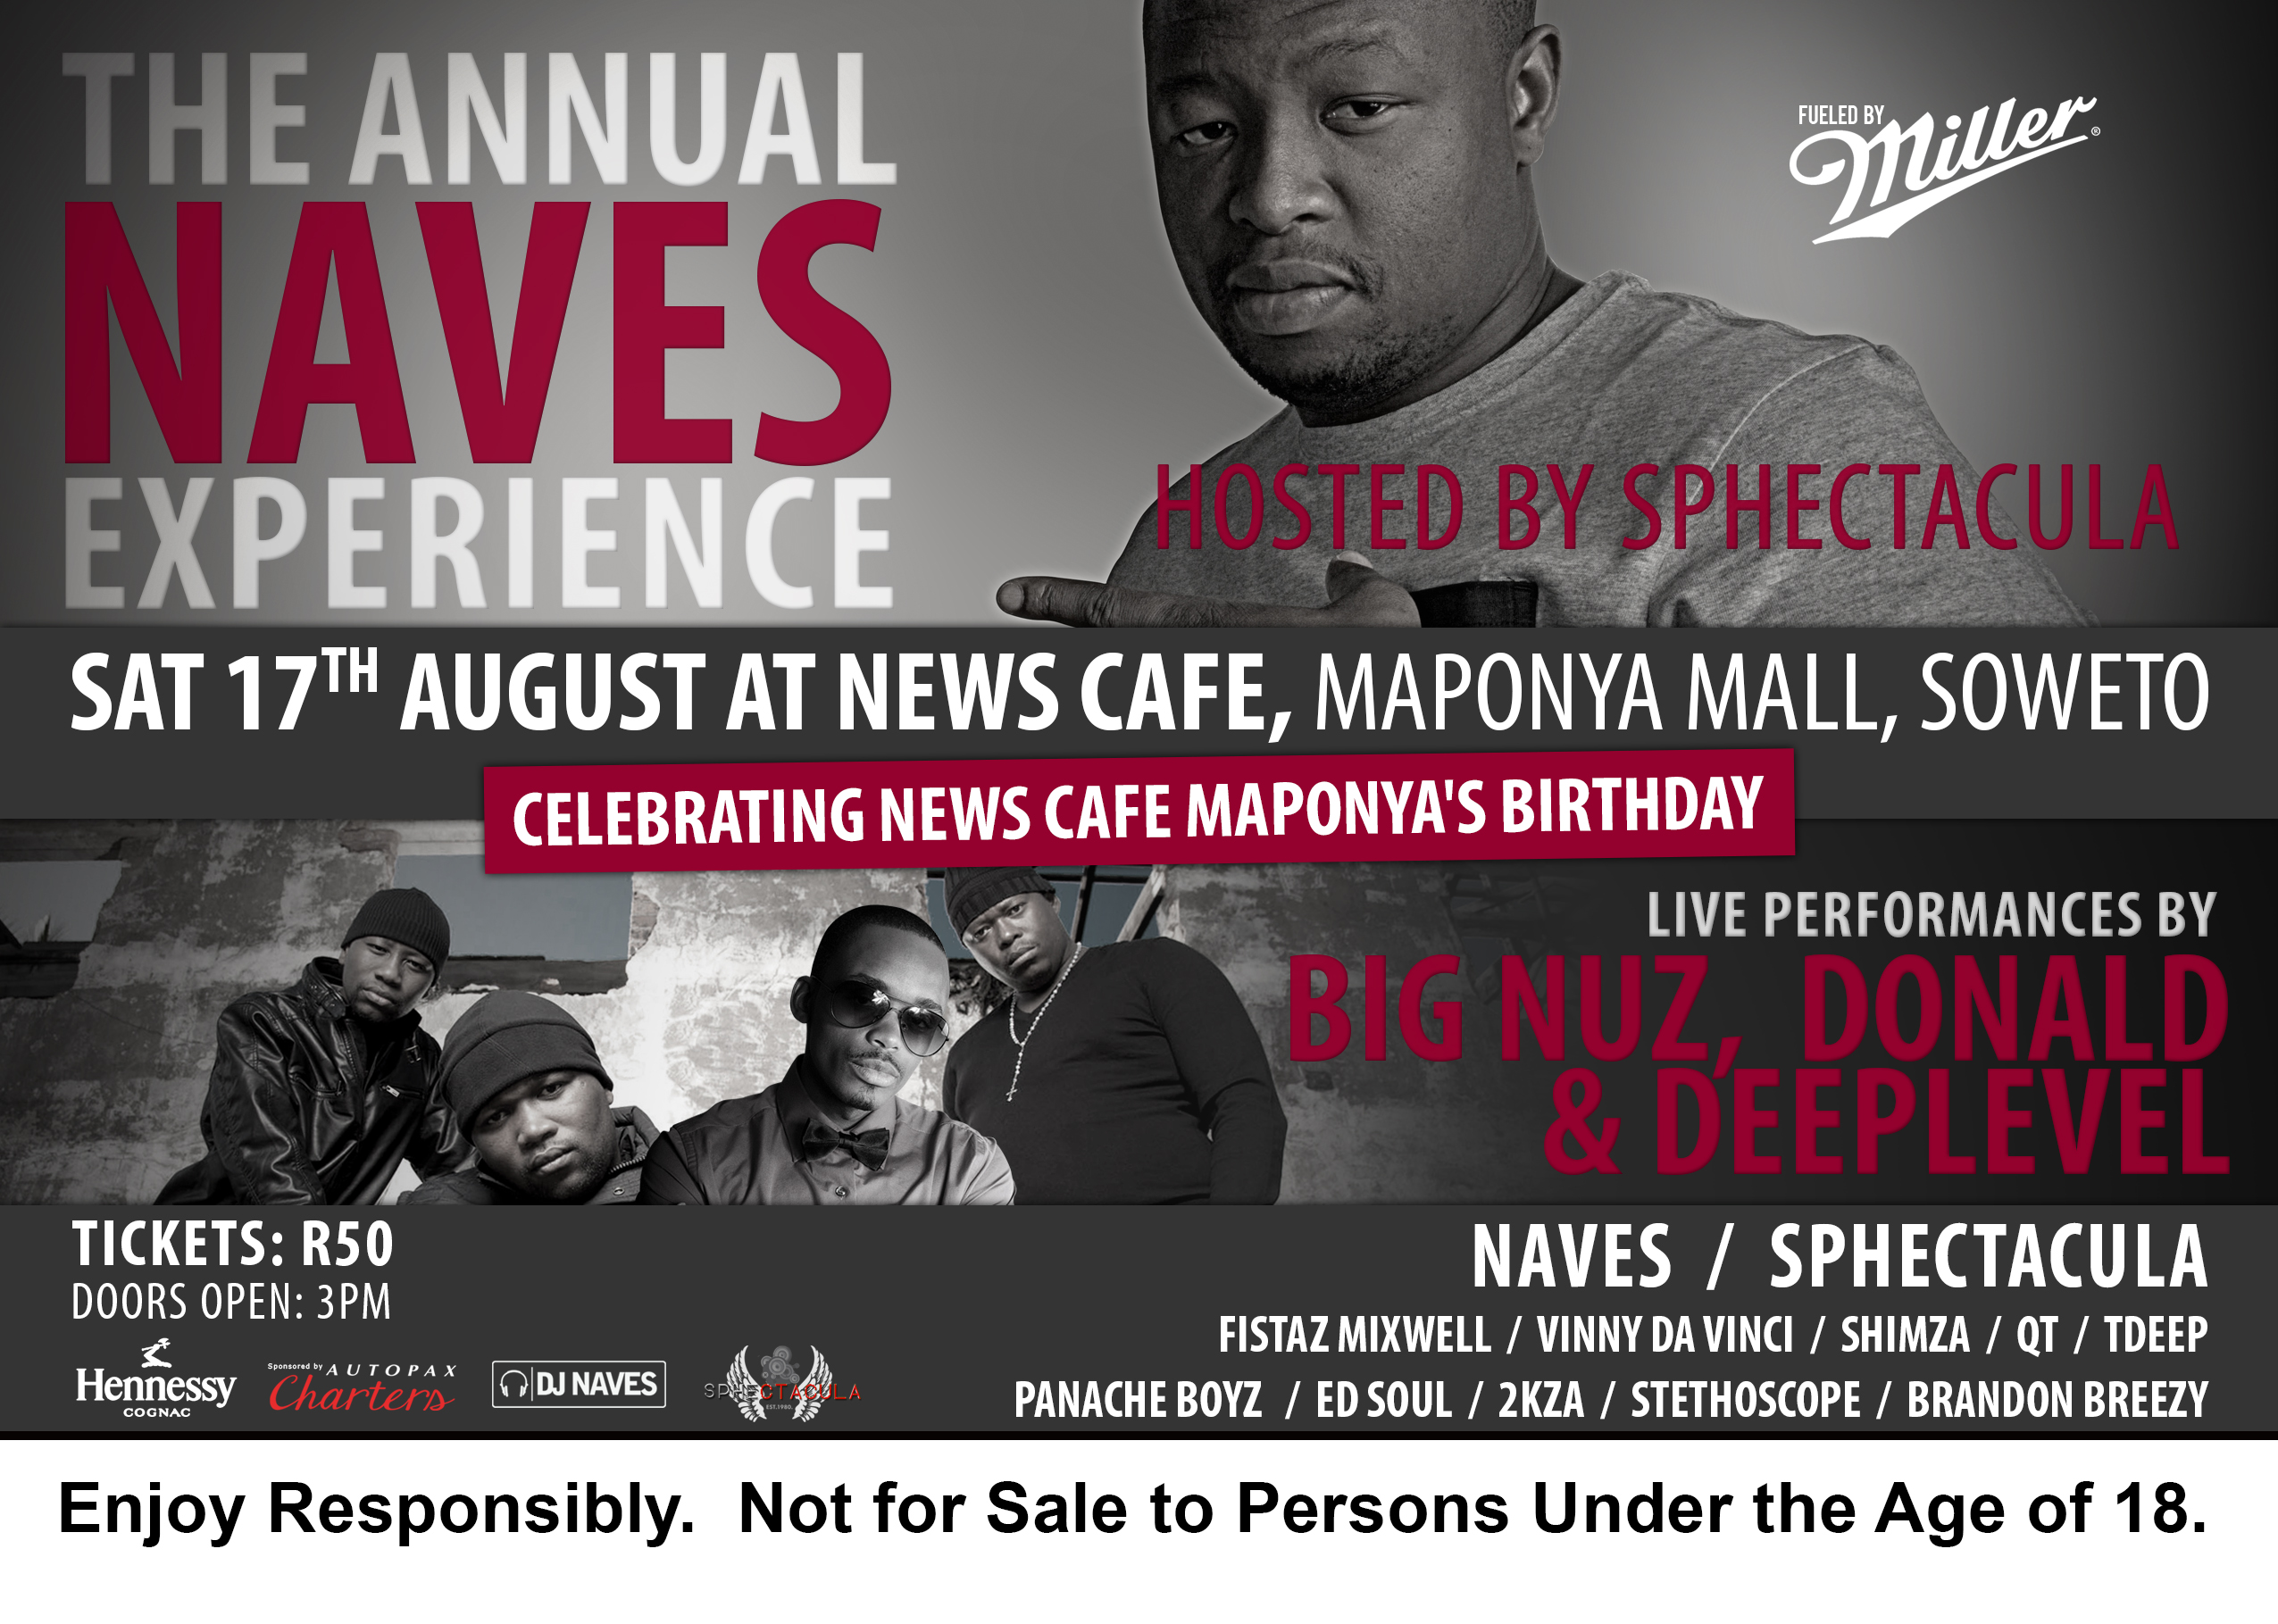 THE ANNUAL NAVES EXPERIENCE ENDS IN JOZI THIS WEEKEND